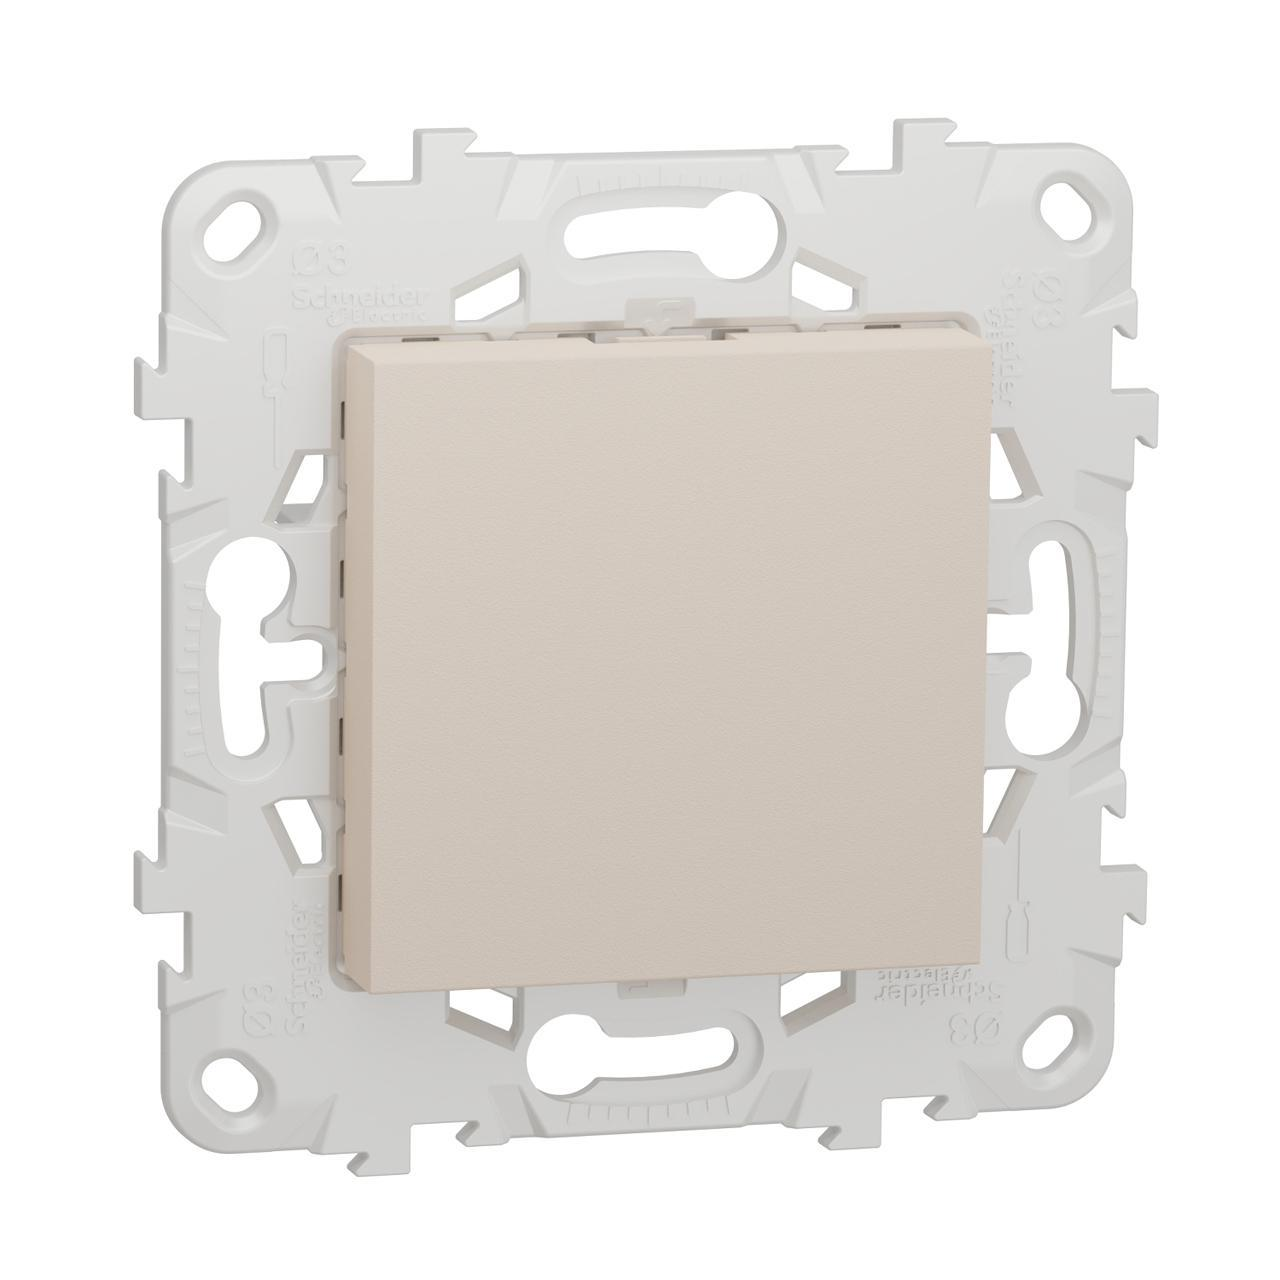 Заглушка 45х45 Schneider Electric Unica New NU586644